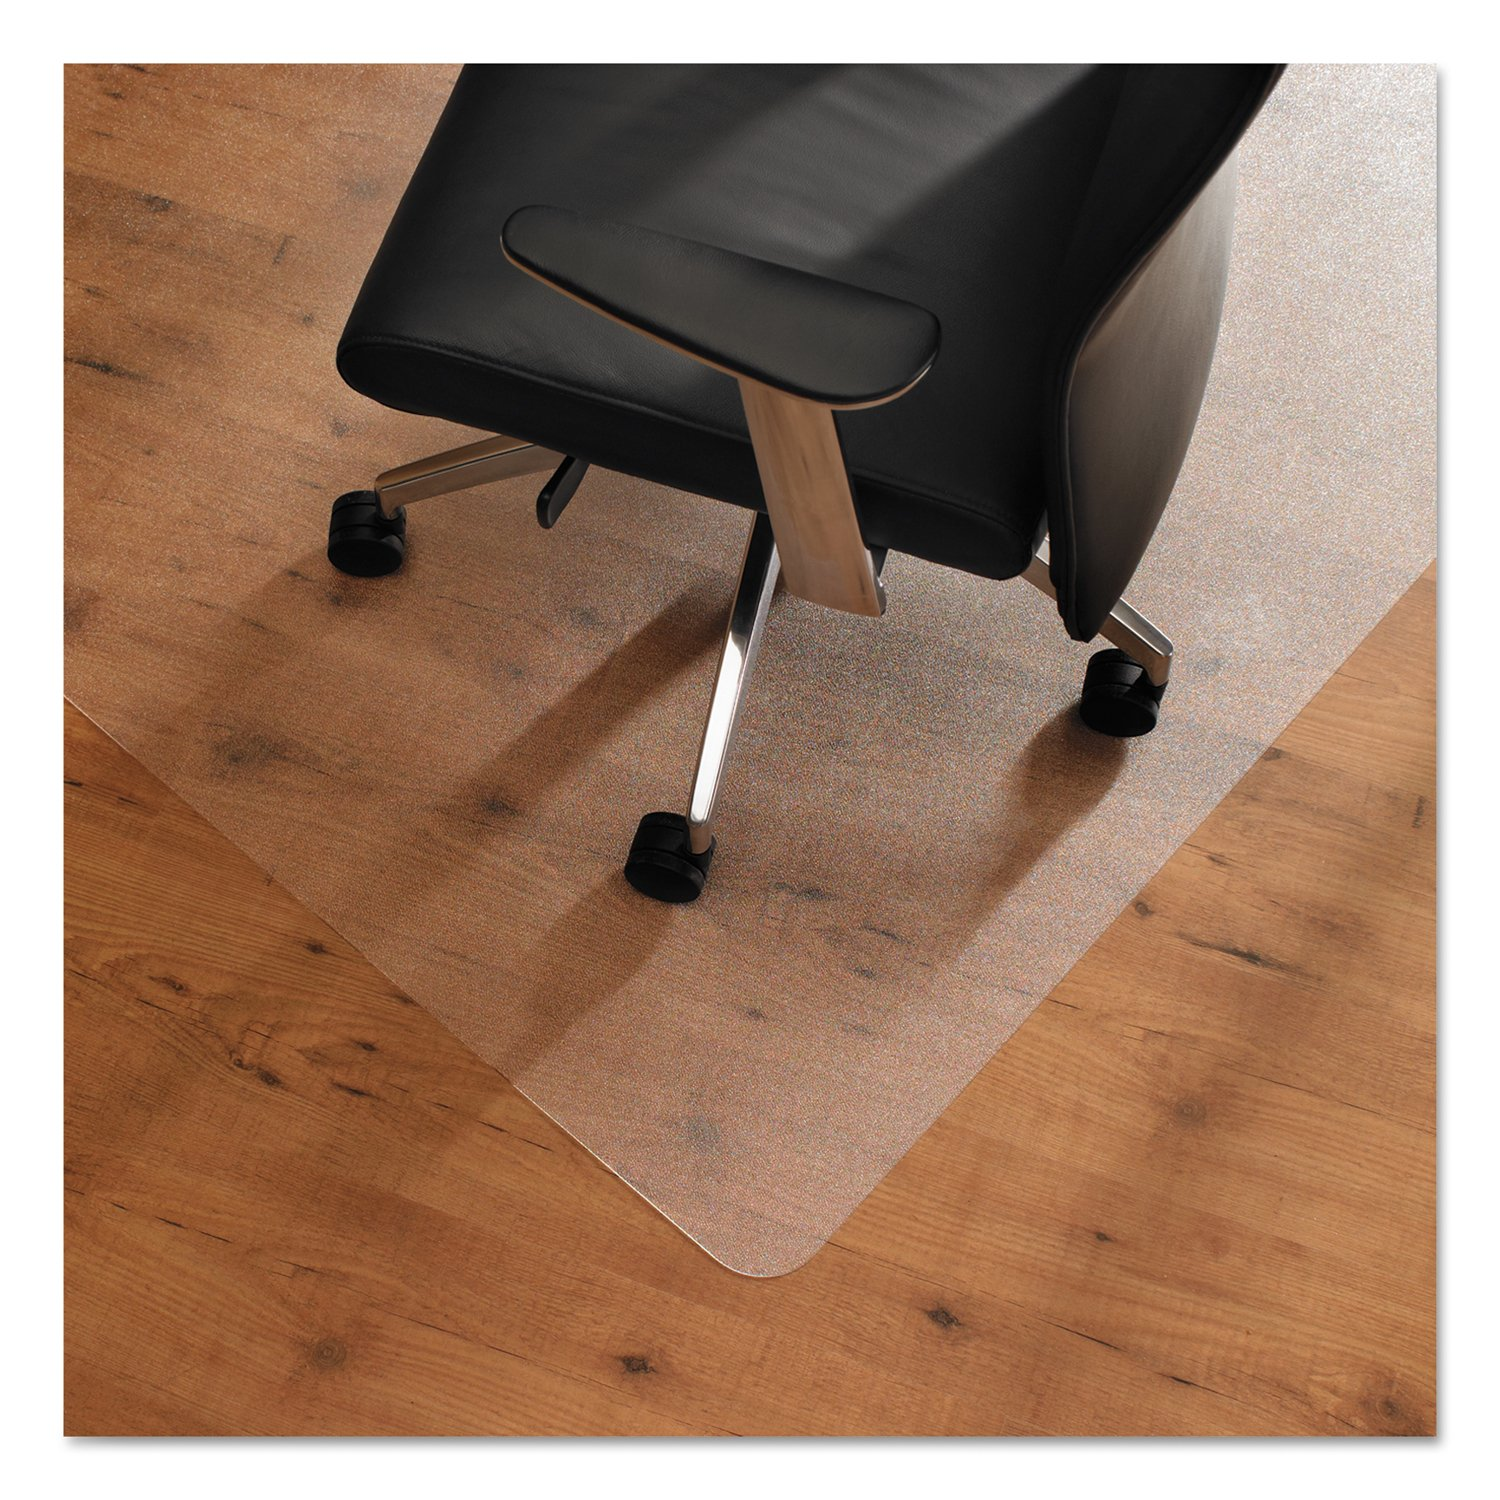 Amazon Floortex Ultimat Polycarbonate Anti Slip Mat for Hard